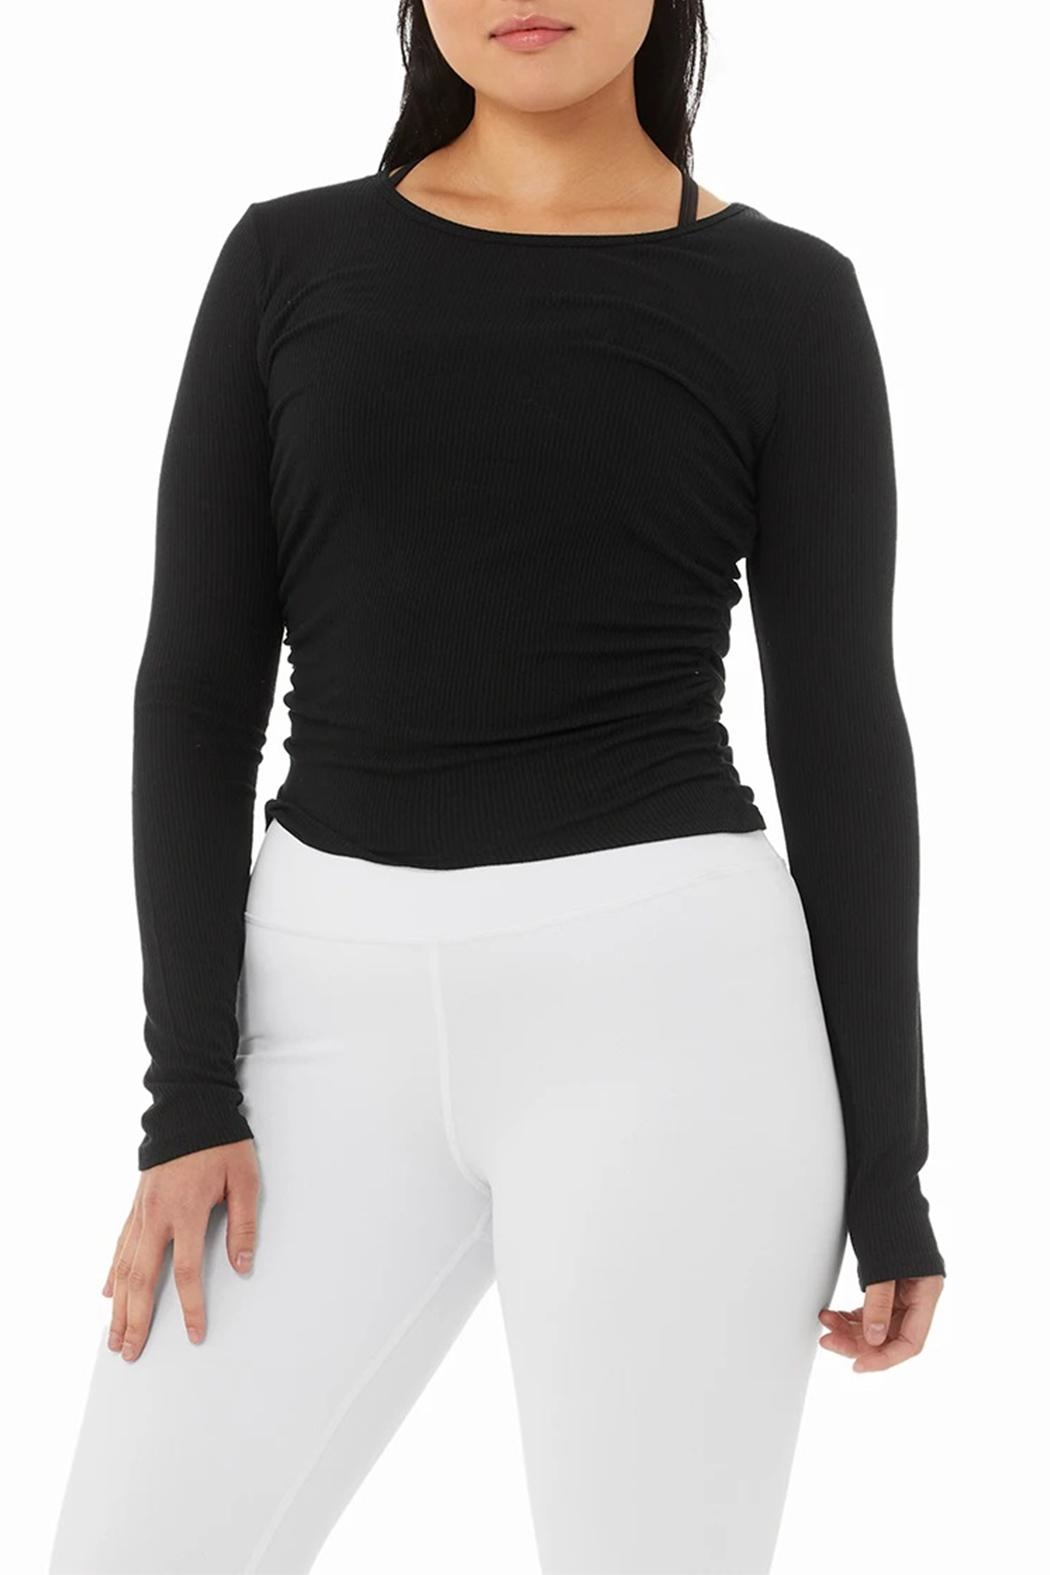 ALO Yoga Gather Long Sleeve - Back Cropped Image